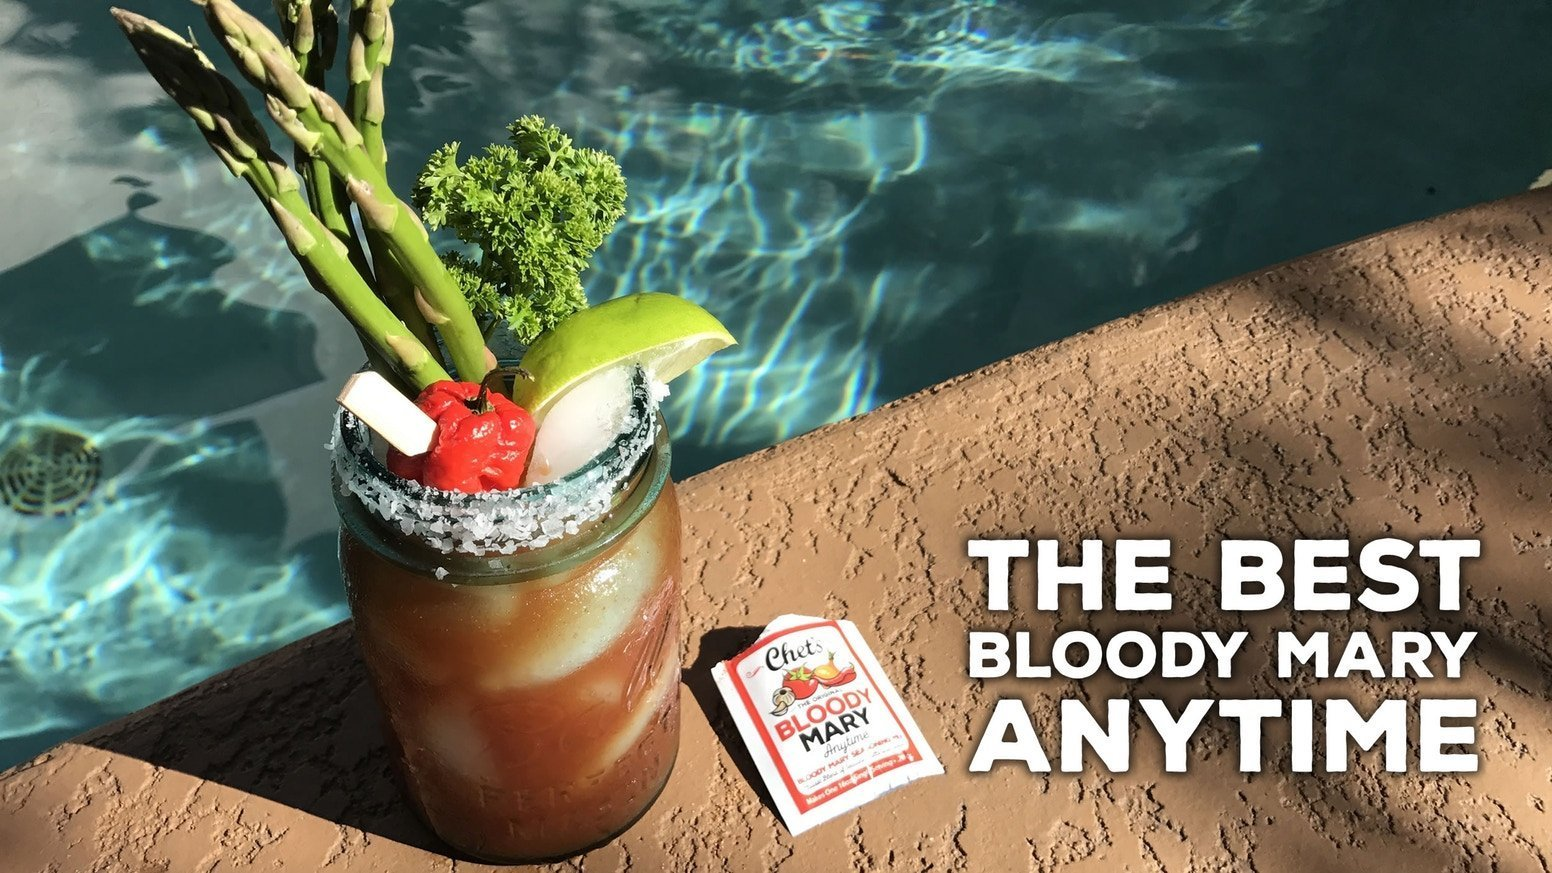 Chet's Bloody Mary Seasoning Mix (12 Packets)